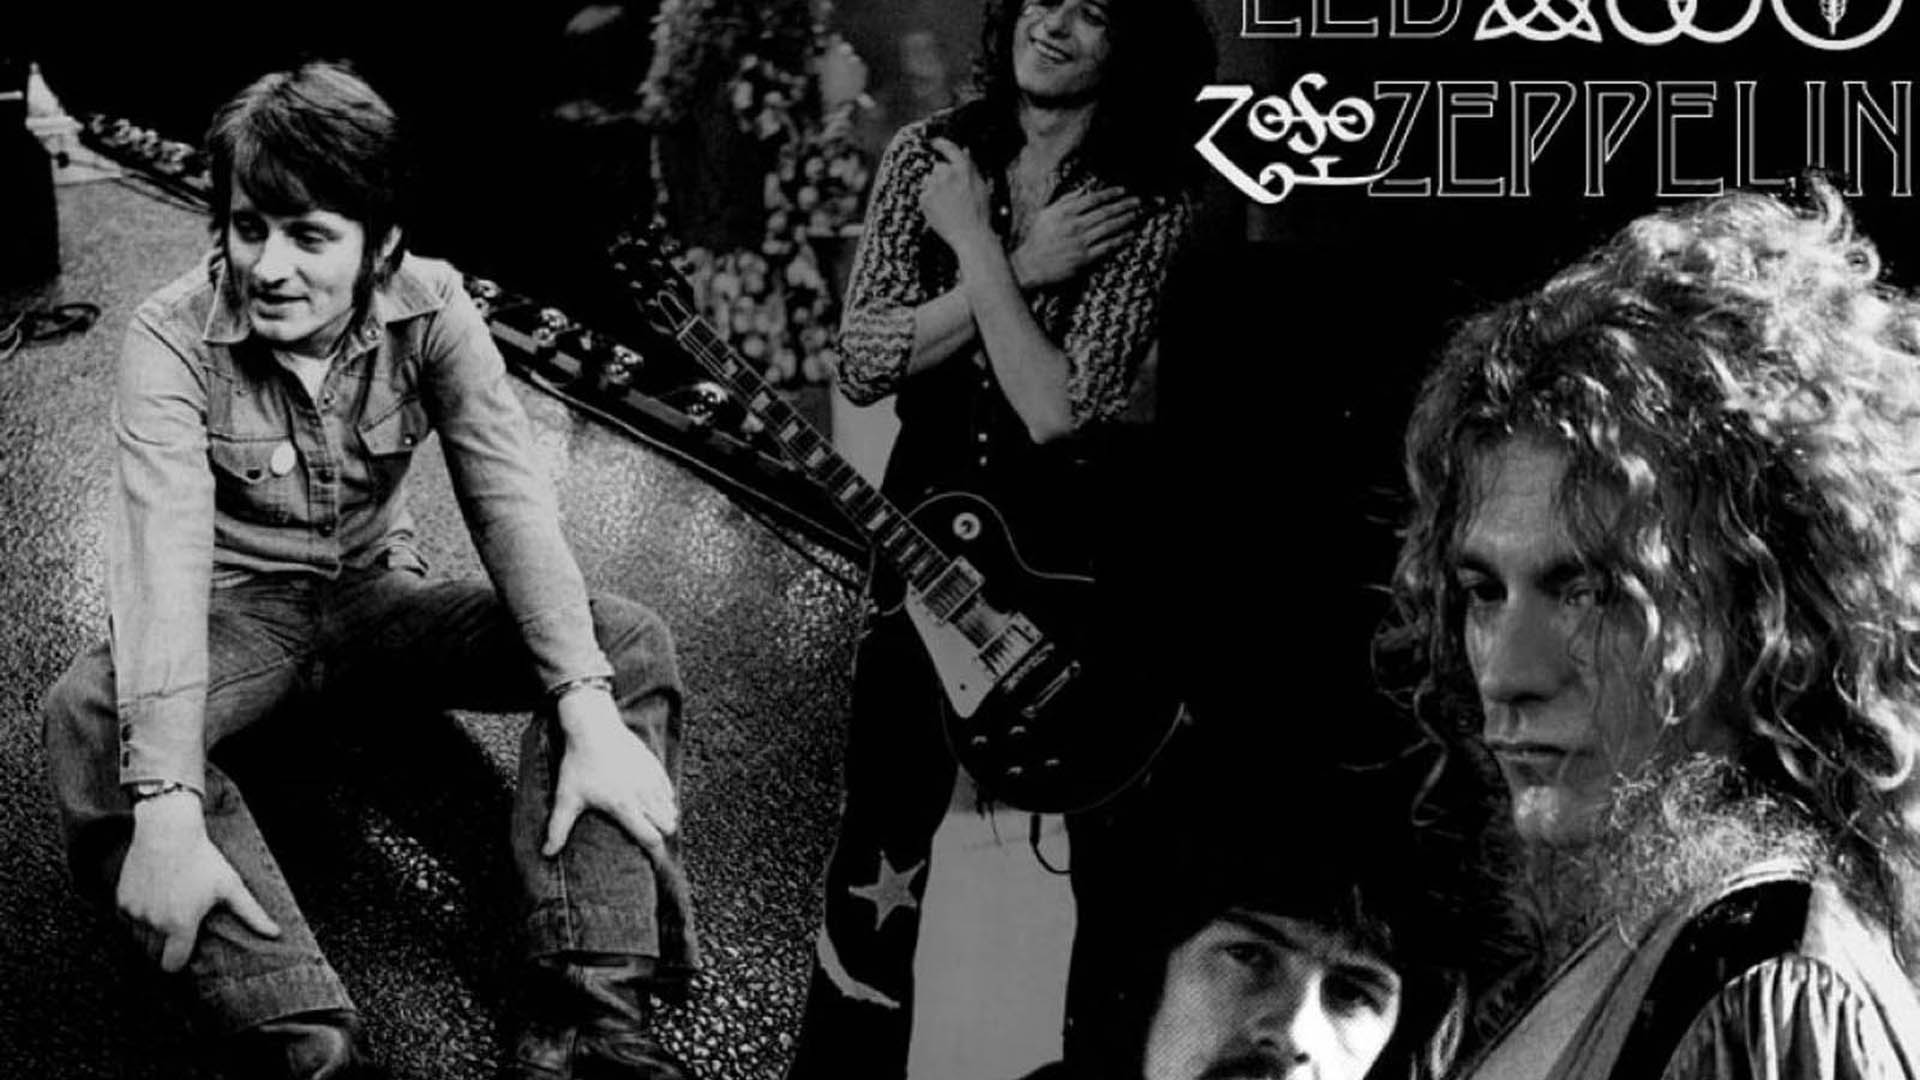 a history of how the band led zepplin became one of the greatest rock group of all time Led zeppelin: led zeppelin, british rock band that was extremely popular in the 1970s  vocalist plant and drummer bonham came from little-known provincial bands the group was influenced by various kinds of music, including early rock and roll, psychedelic rock, blues, folk, celtic, indian, and arabic music  austrian composer, widely recognized as one of the greatest composers in the.